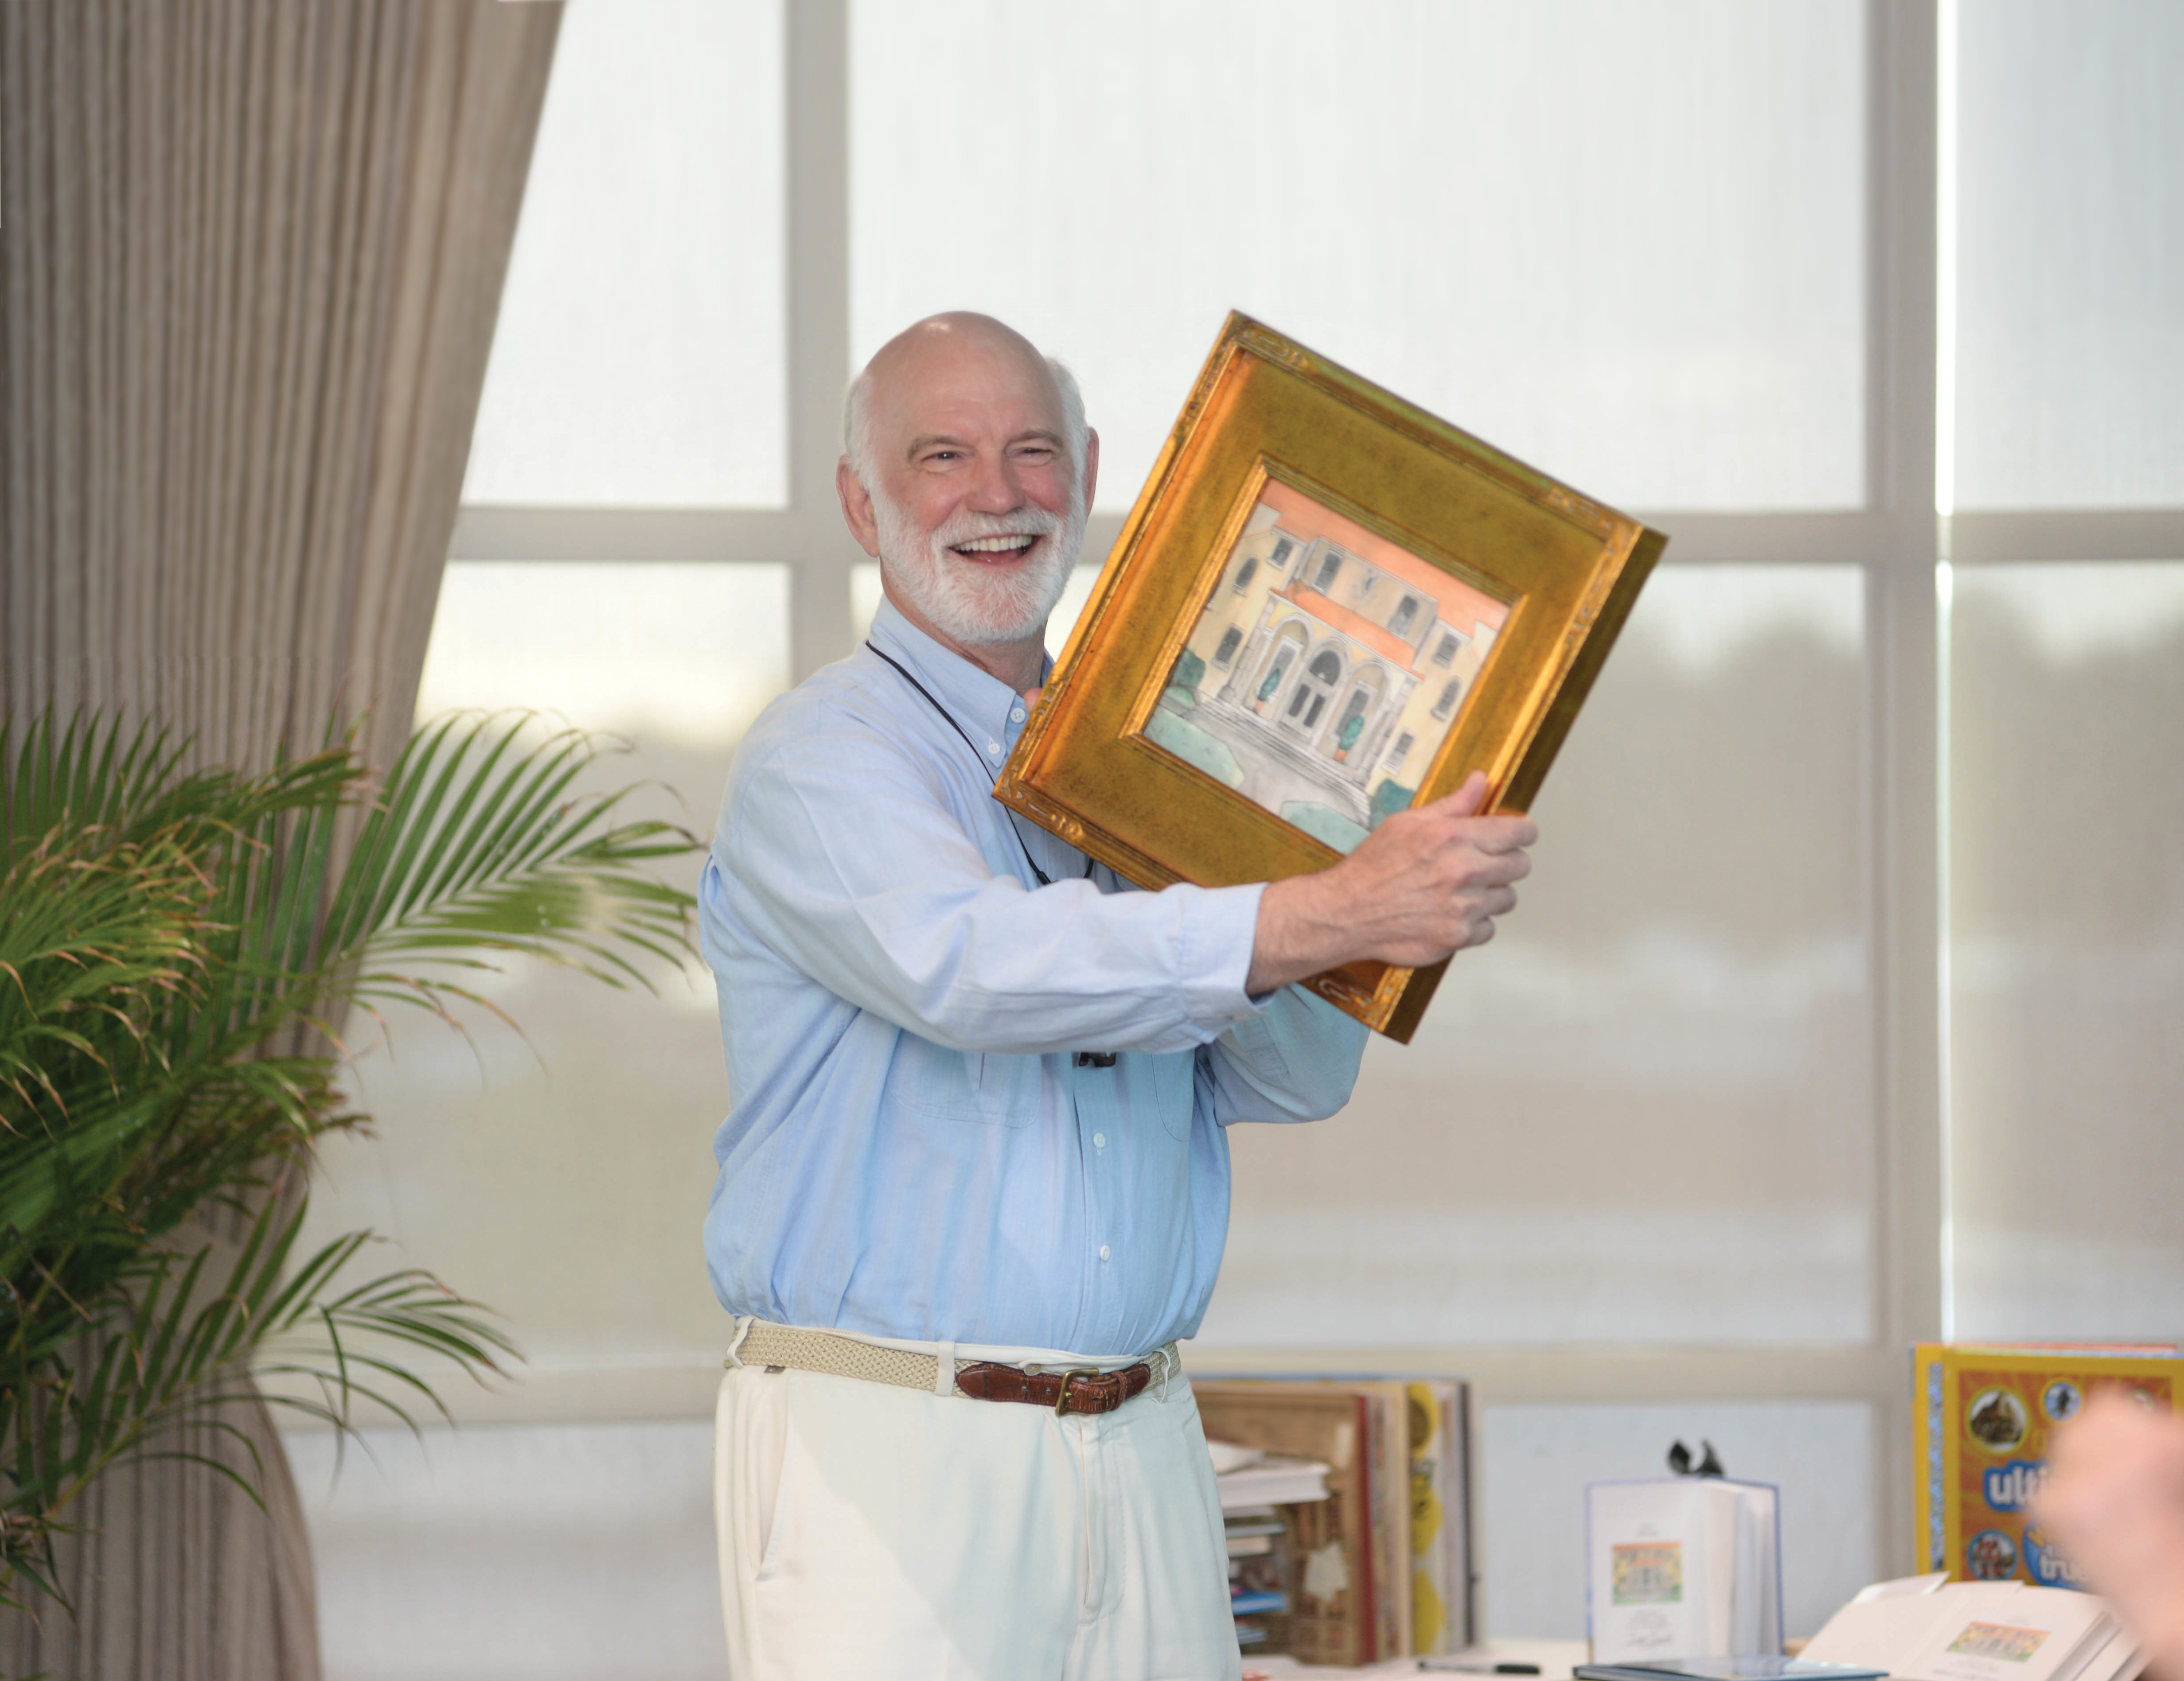 Mr. Berg holds a painting of Orega Elementary school